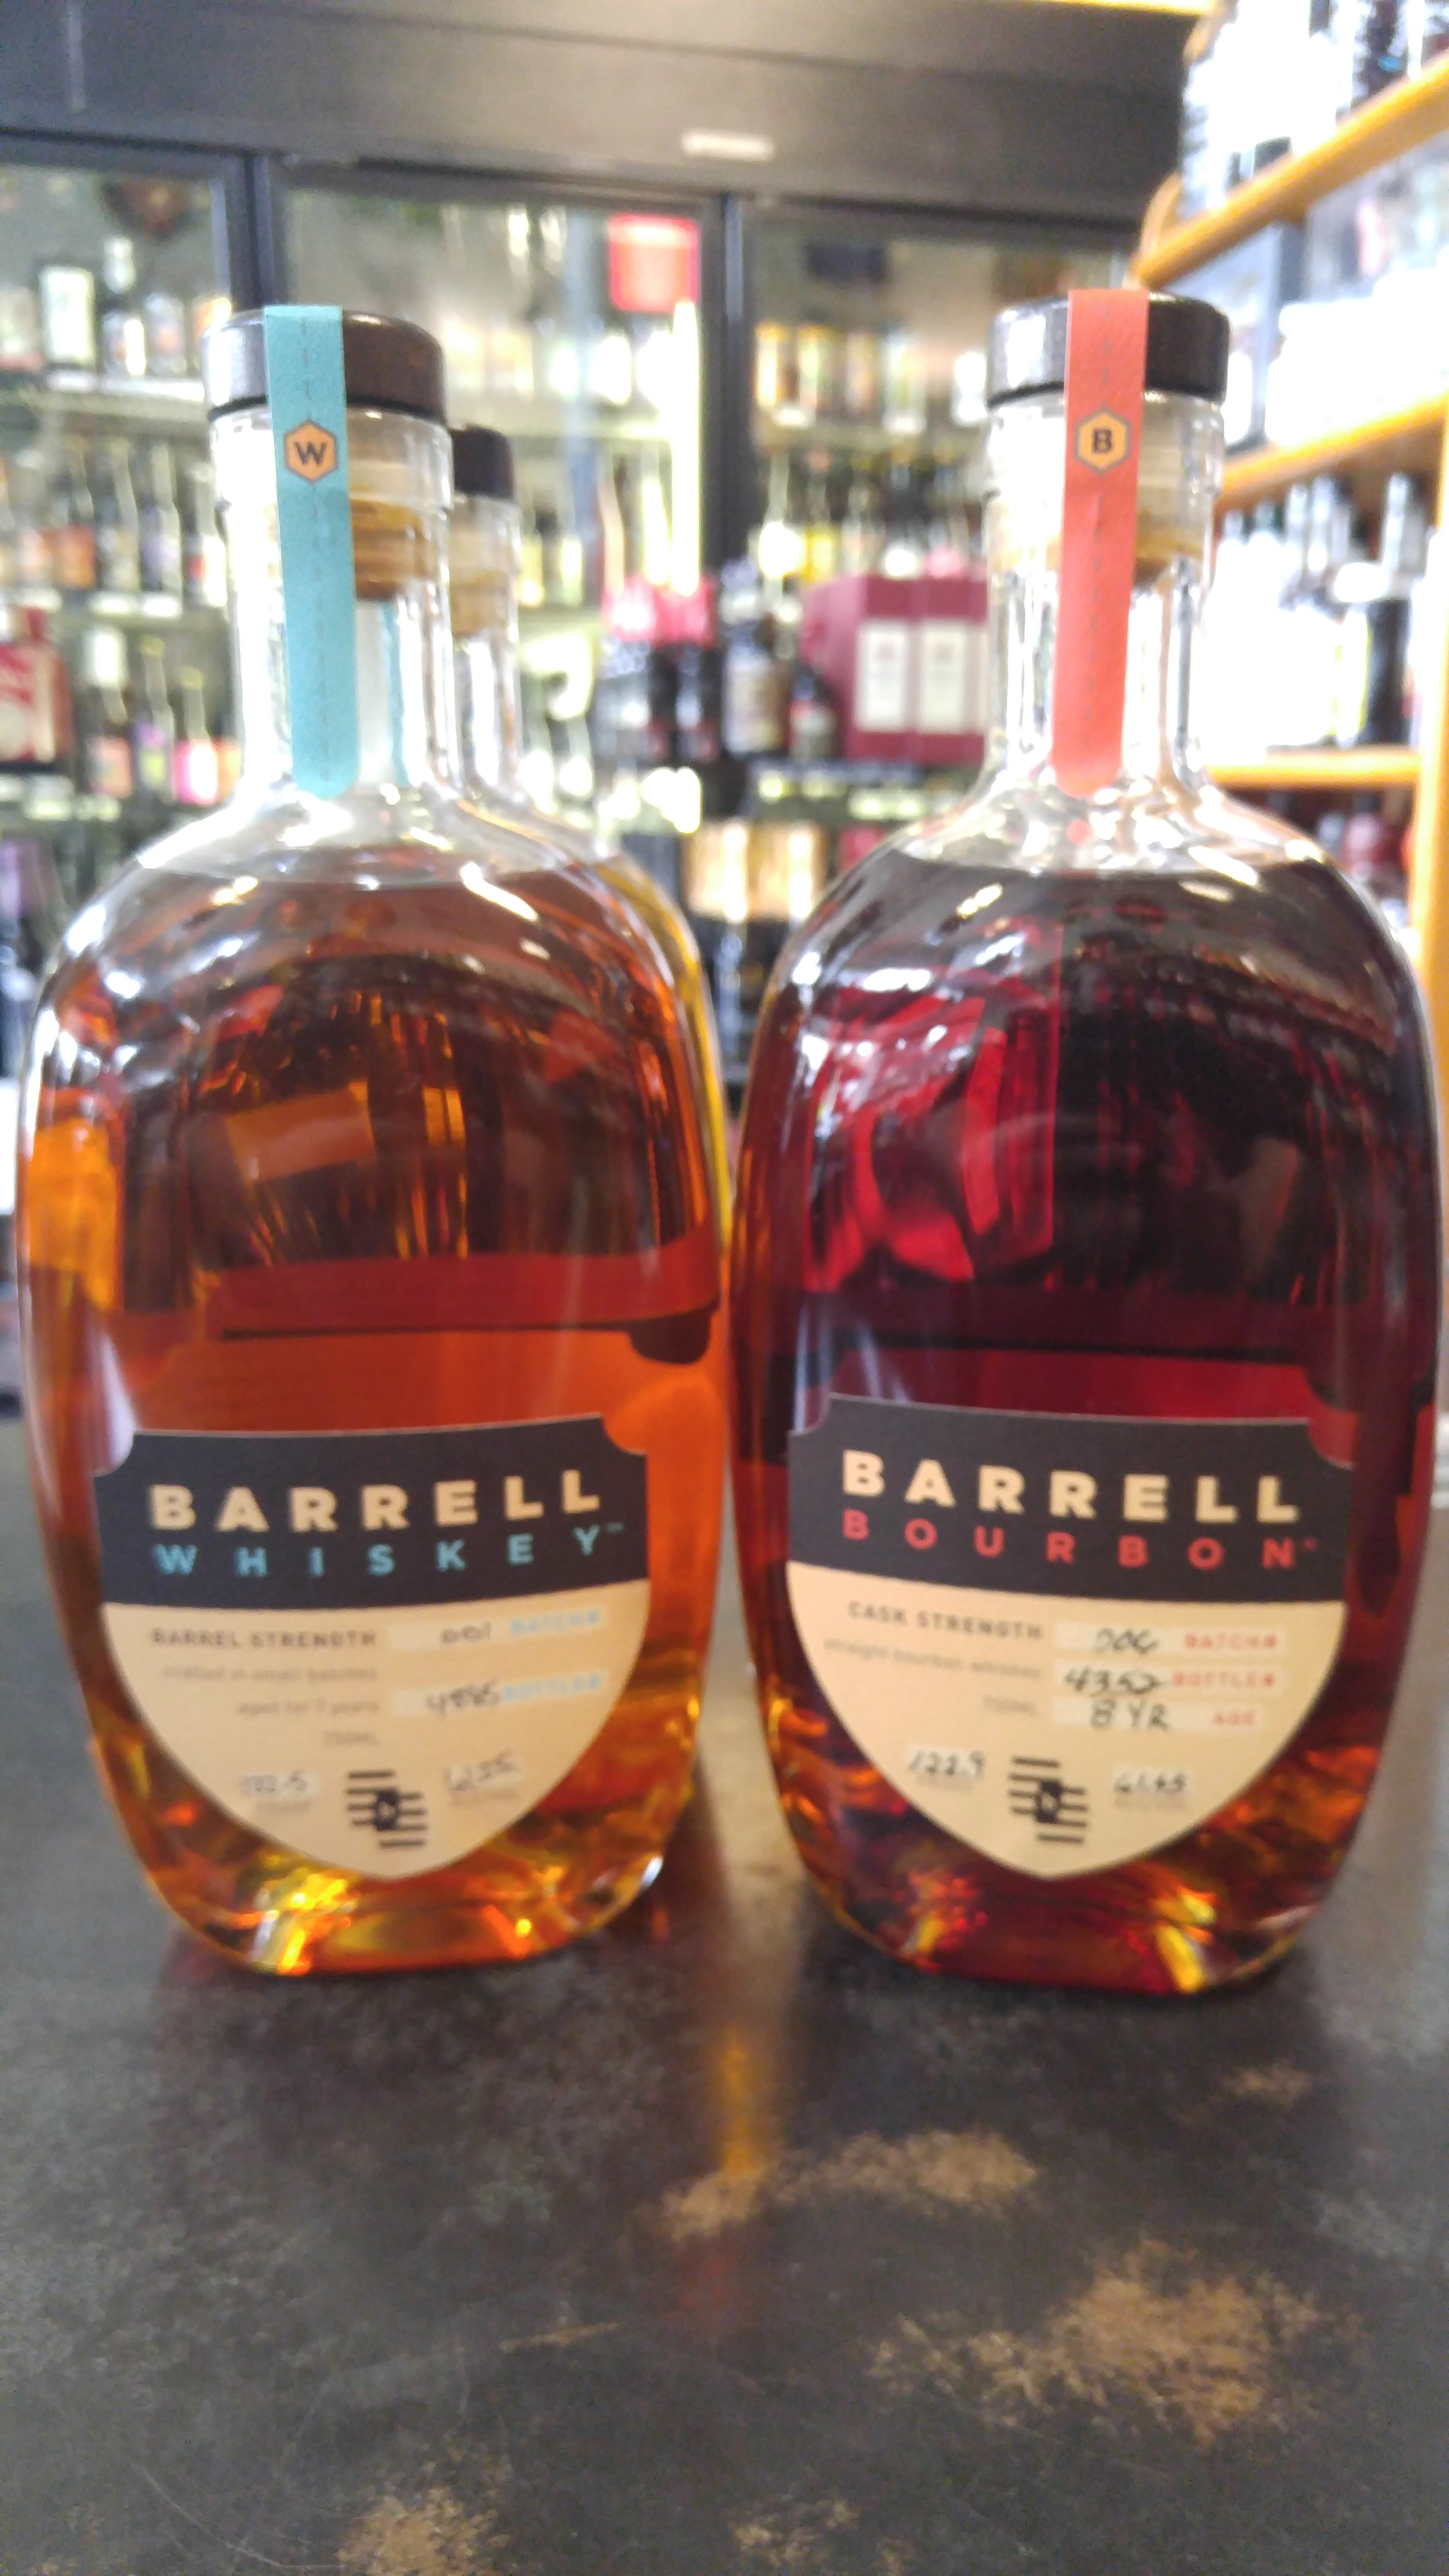 Barrell 8 Year Bourbon and Barrell 7 Year Whiskey